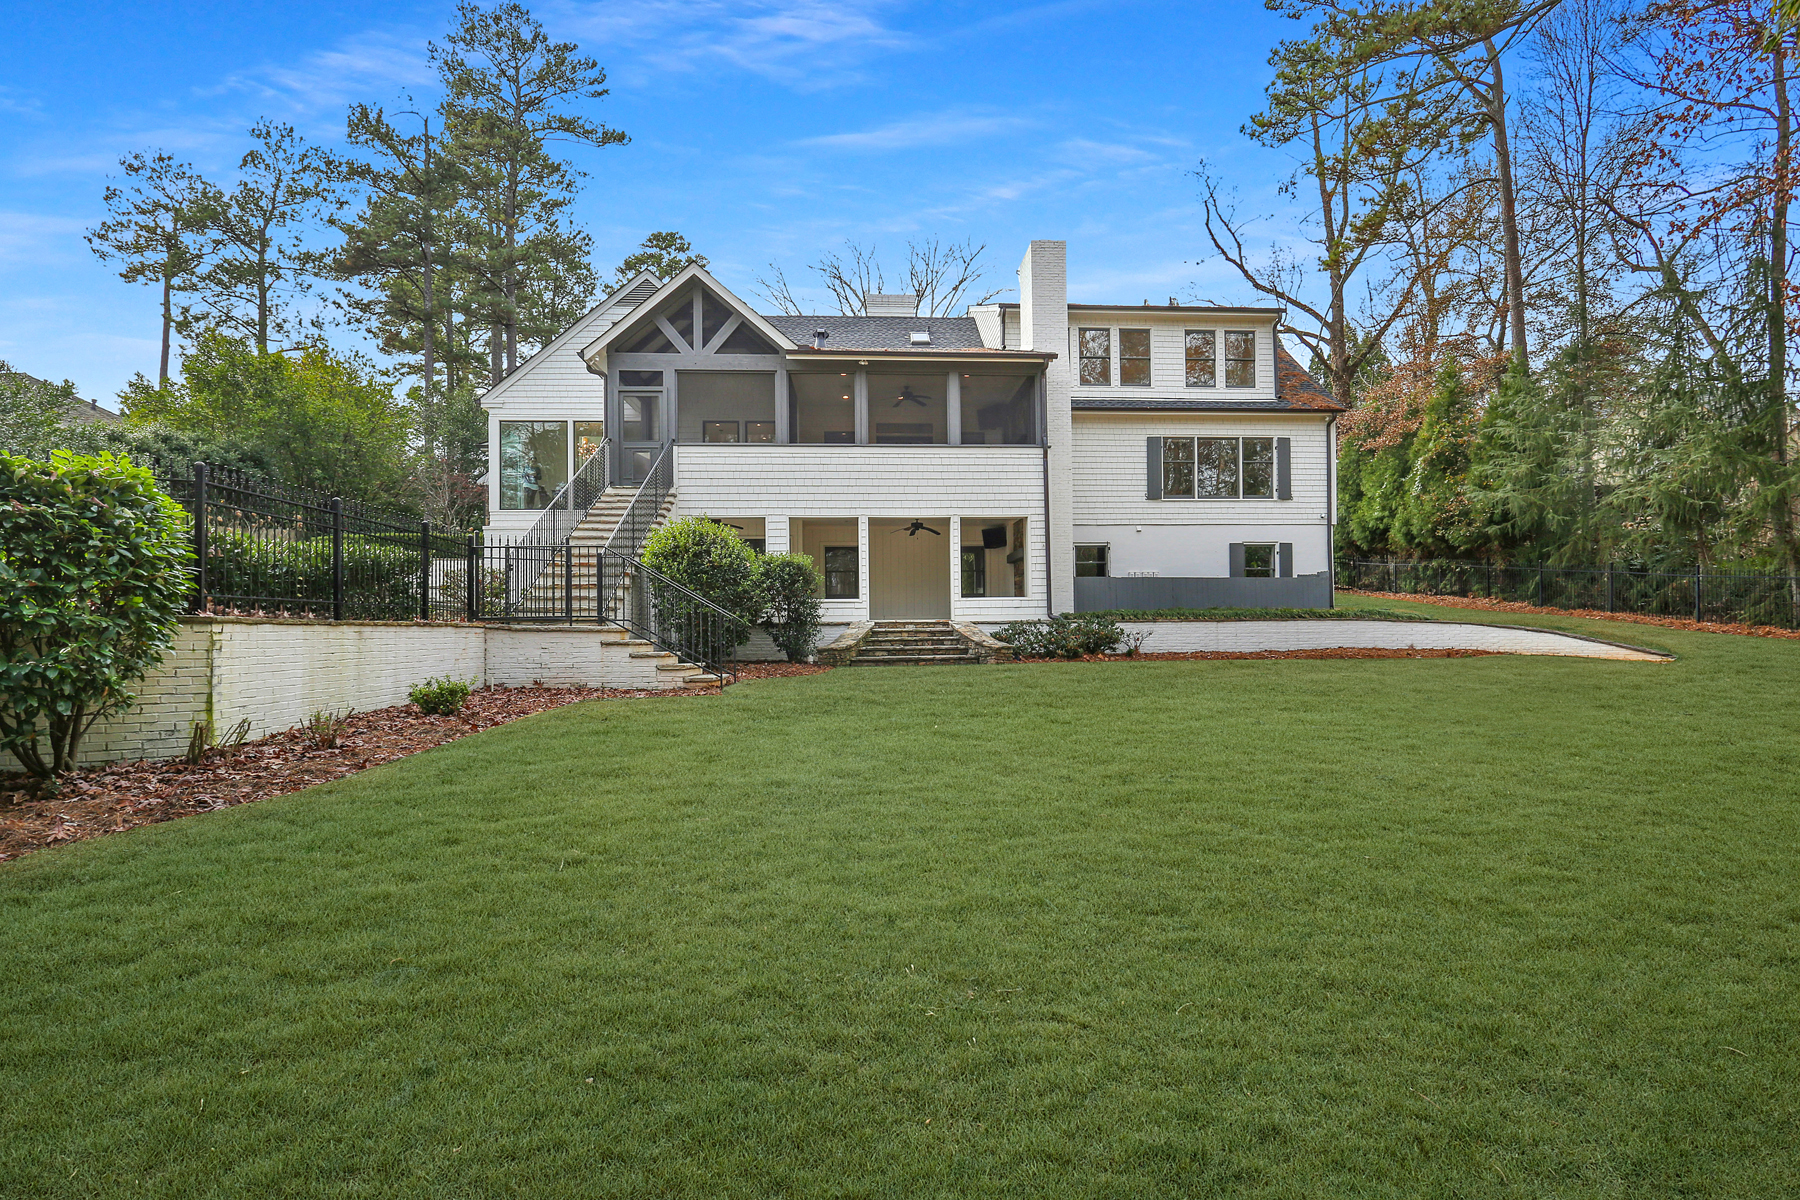 Additional photo for property listing at Complete Renovation By Derazi Homes 2871 Mabry Road NE Brookhaven, Georgia 30319 United States